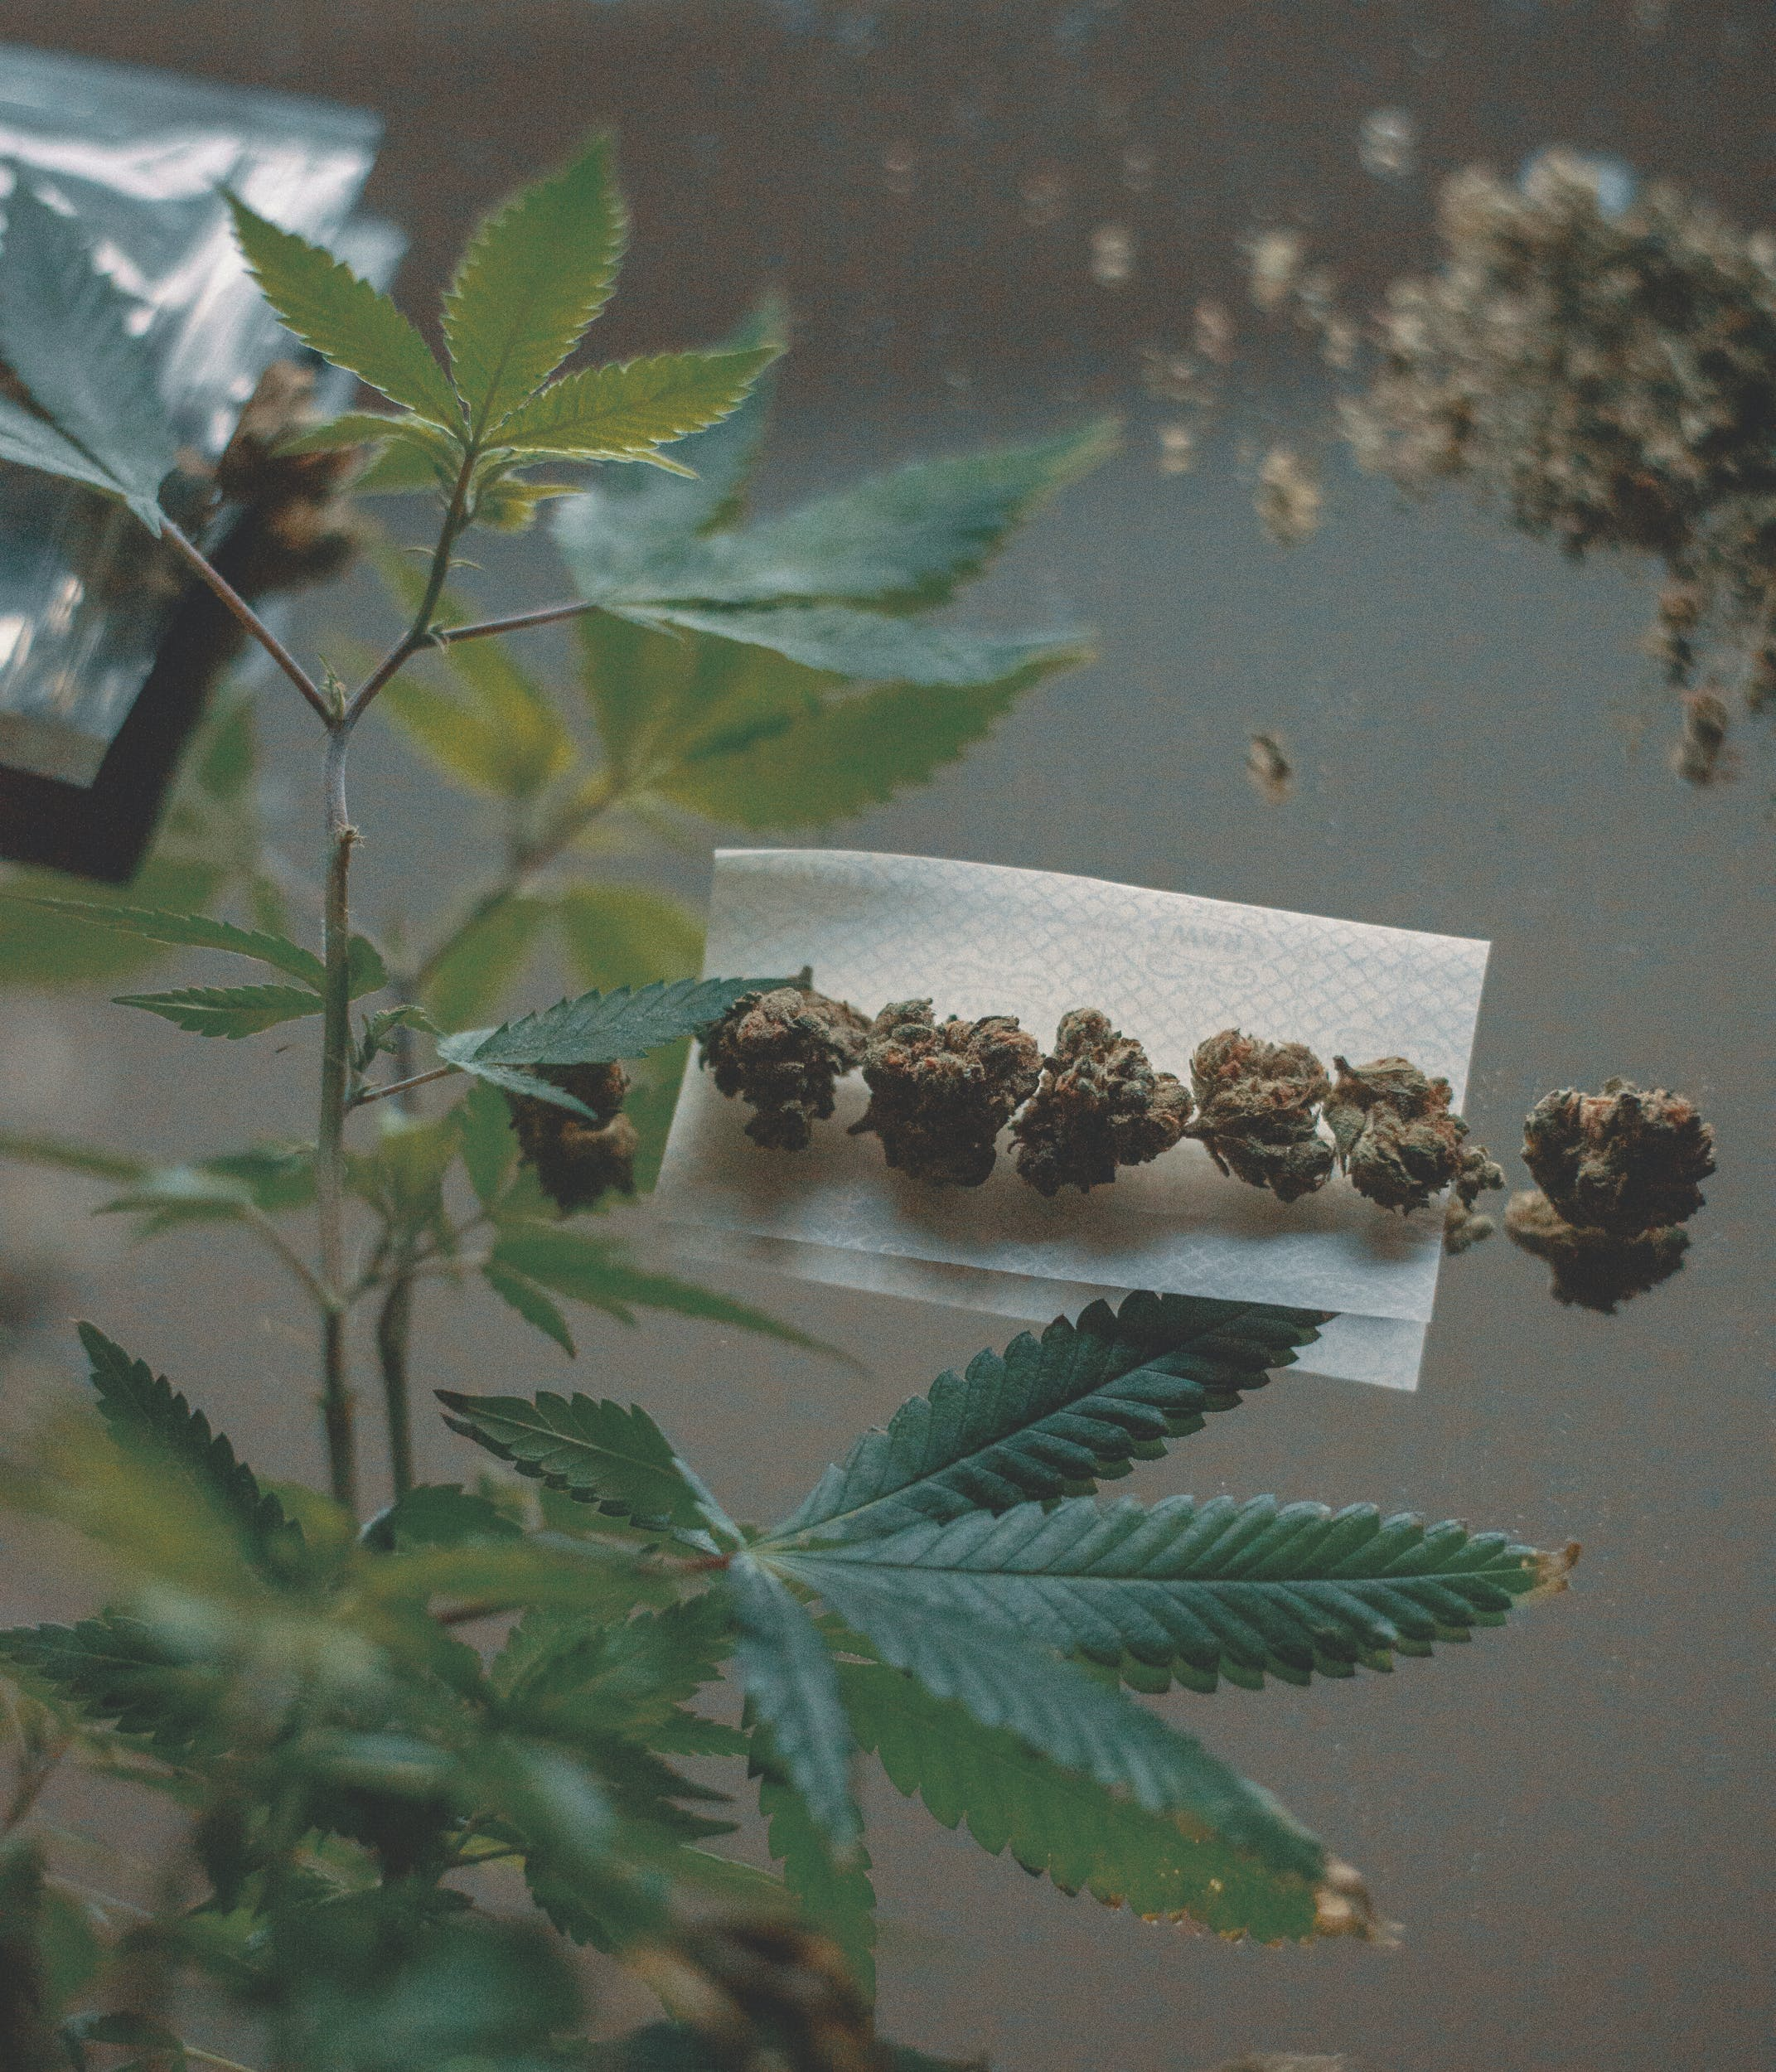 Best Weed Strains These are the Best Weed Strains in the World